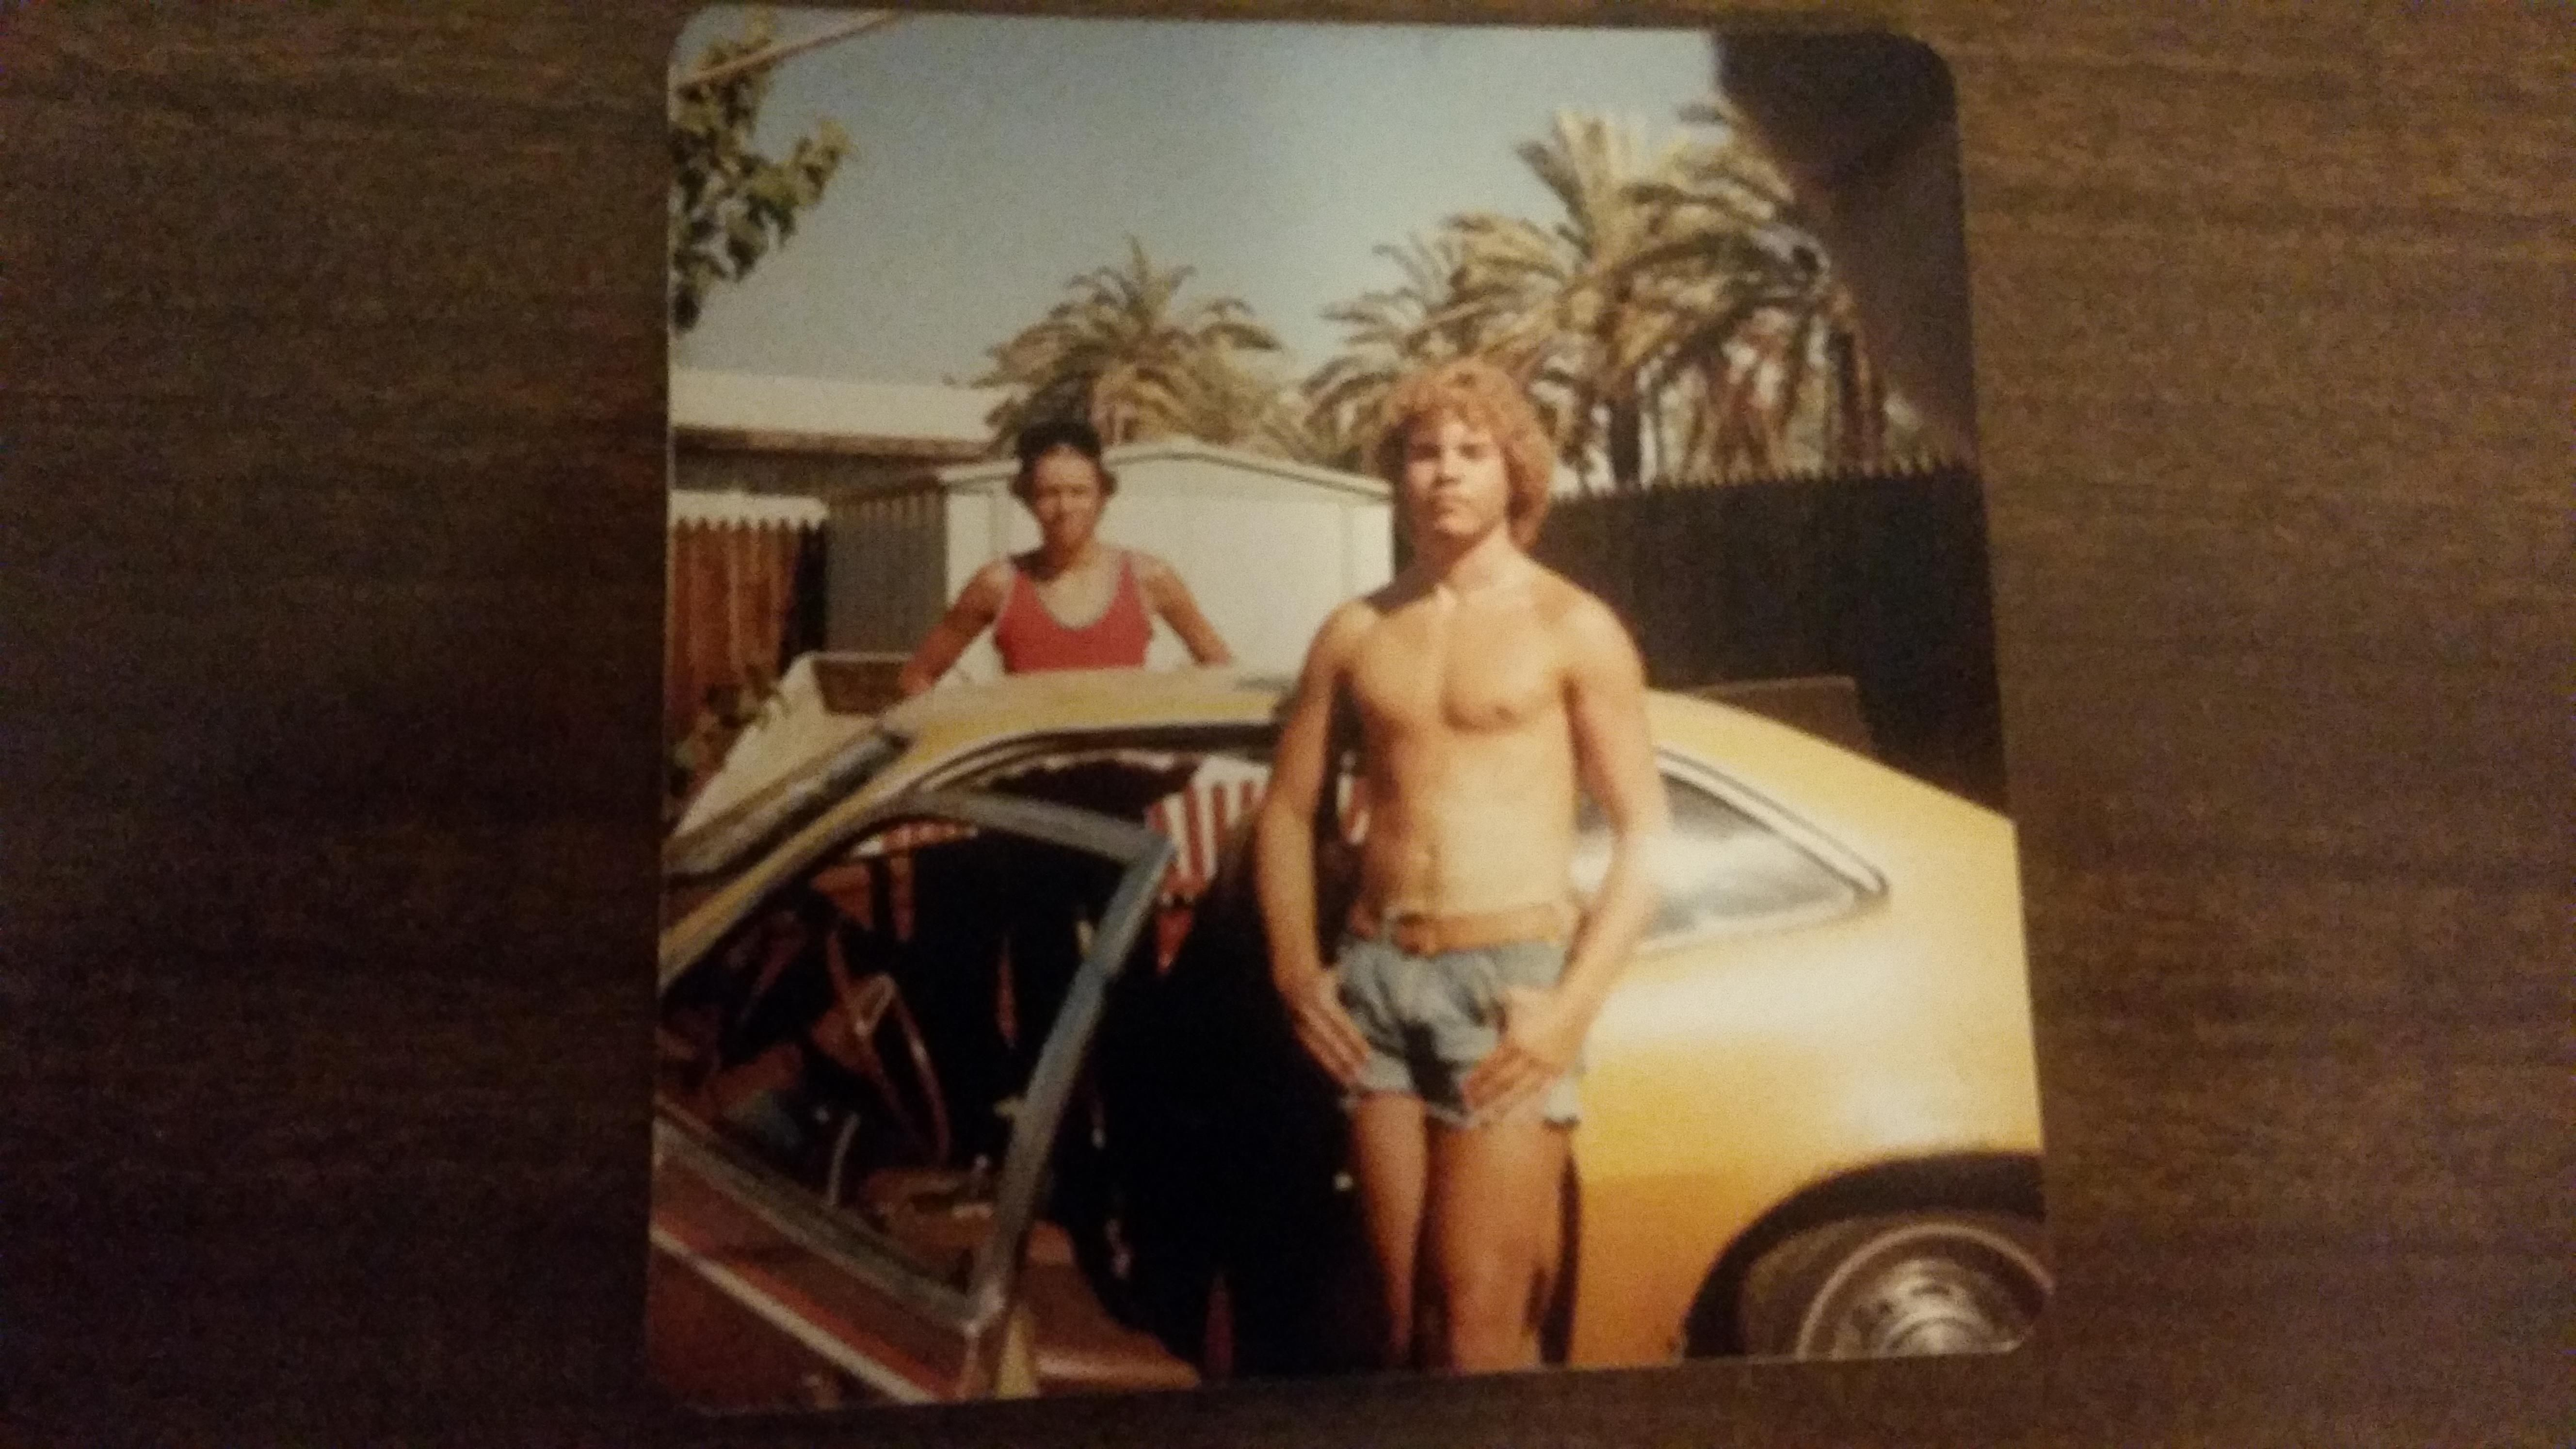 My dad and his Ford Pinto. c. 1979 Sorry for the garbage photo quality.